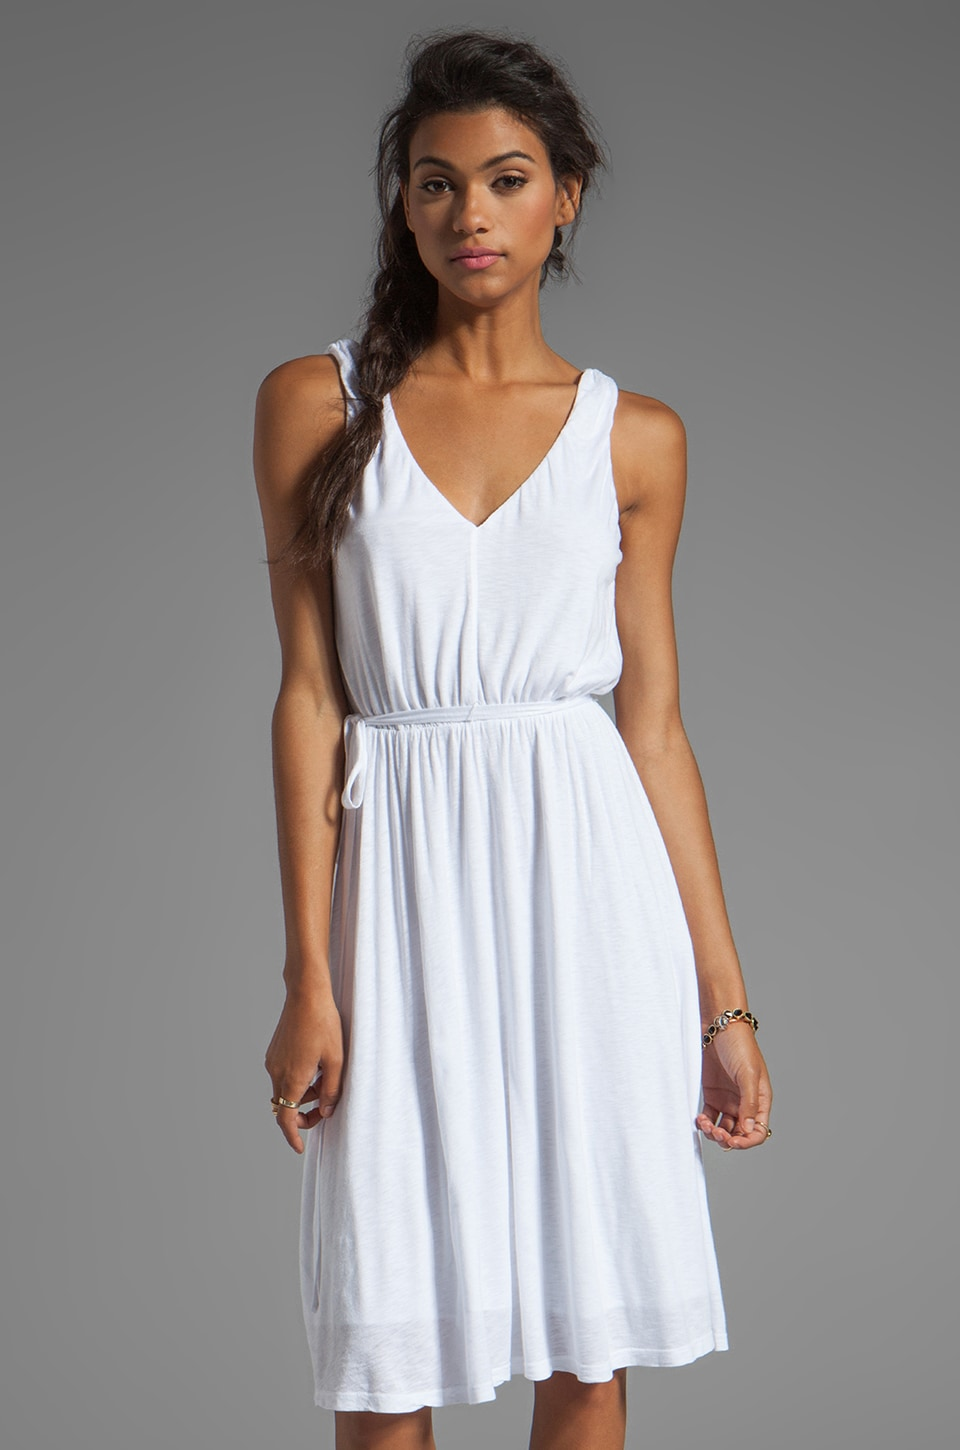 Velvet by Graham & Spencer Karlee Luxe Slub Dress in White